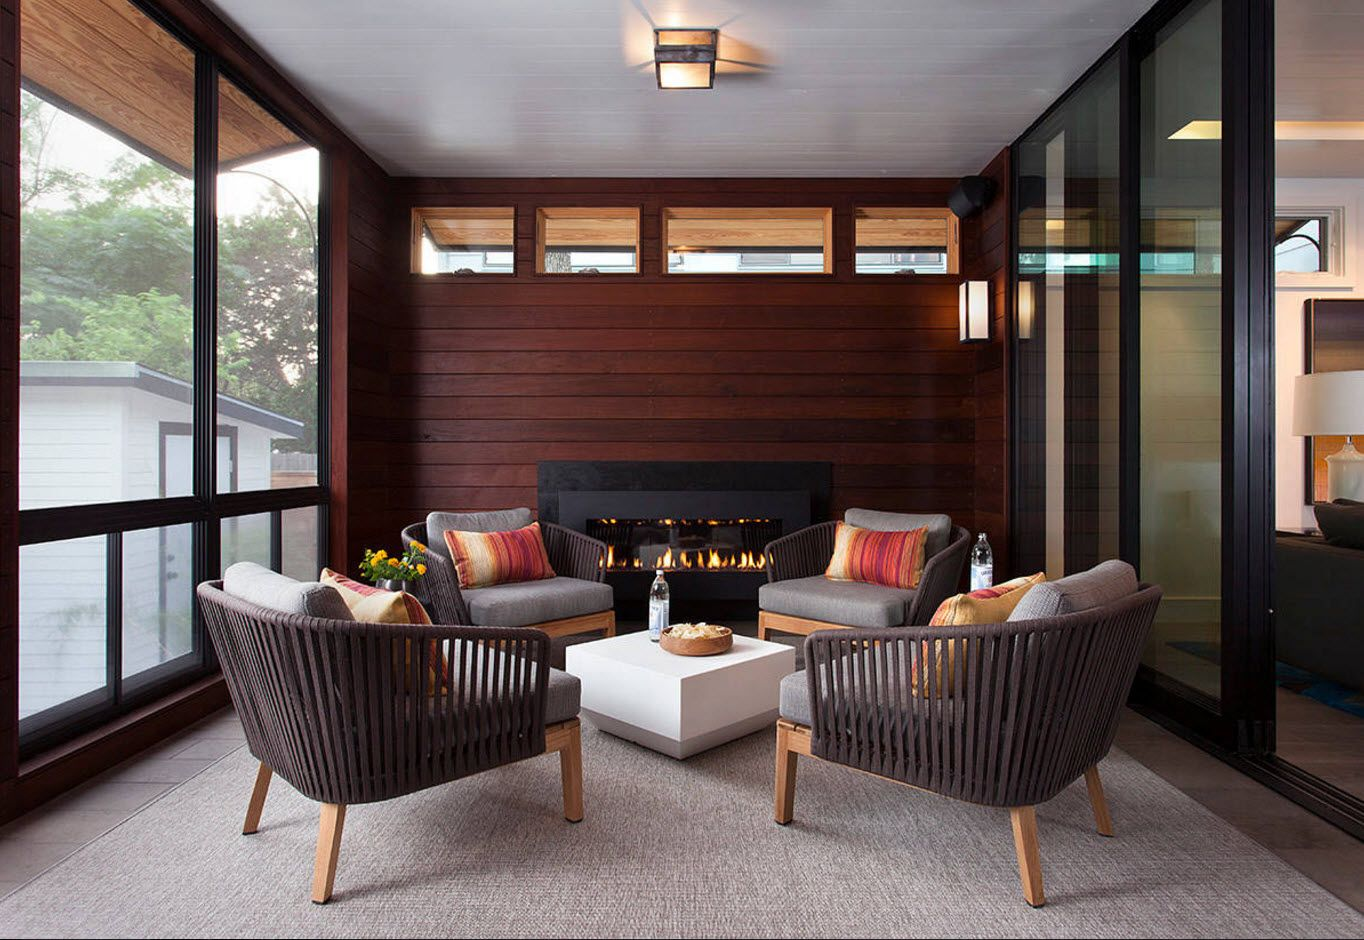 Dark noble wood to trim modern styled porch terrace